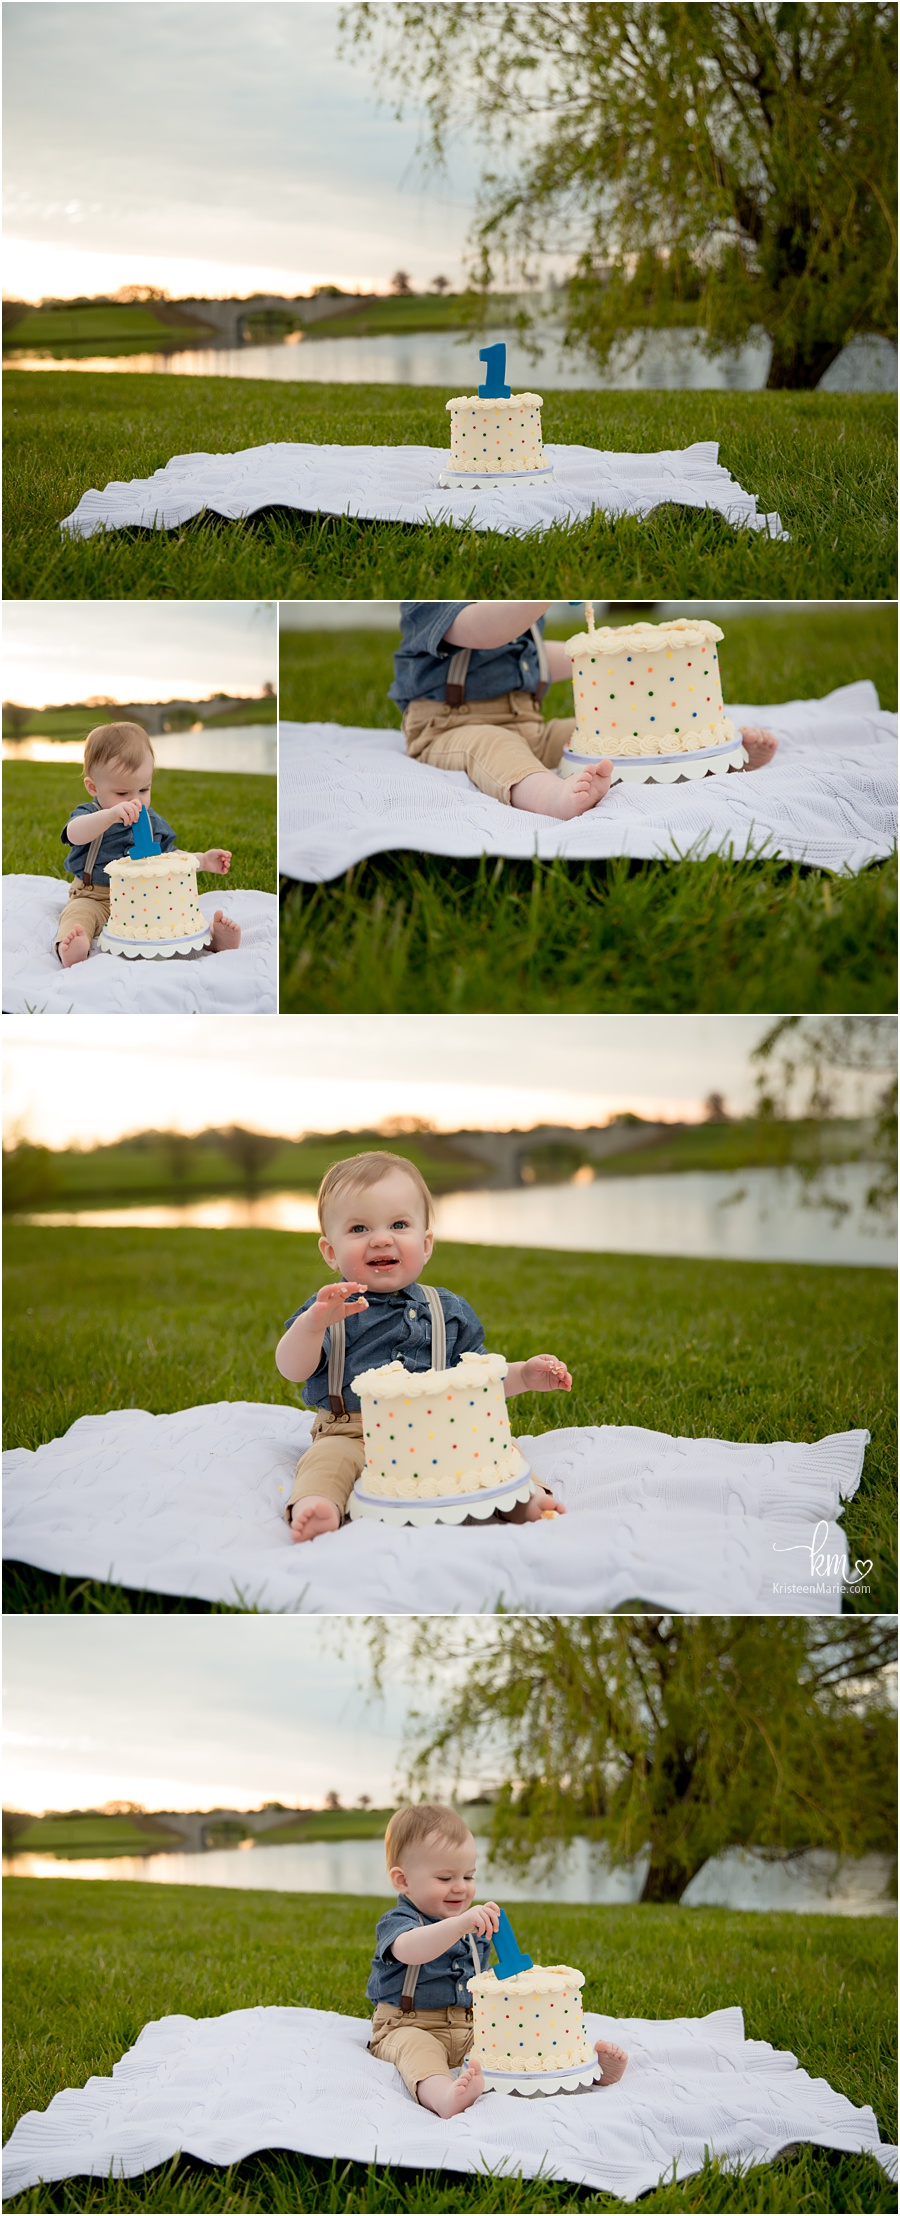 outdoor cake smash session at sunrise in Indianapolis - Indy family photography